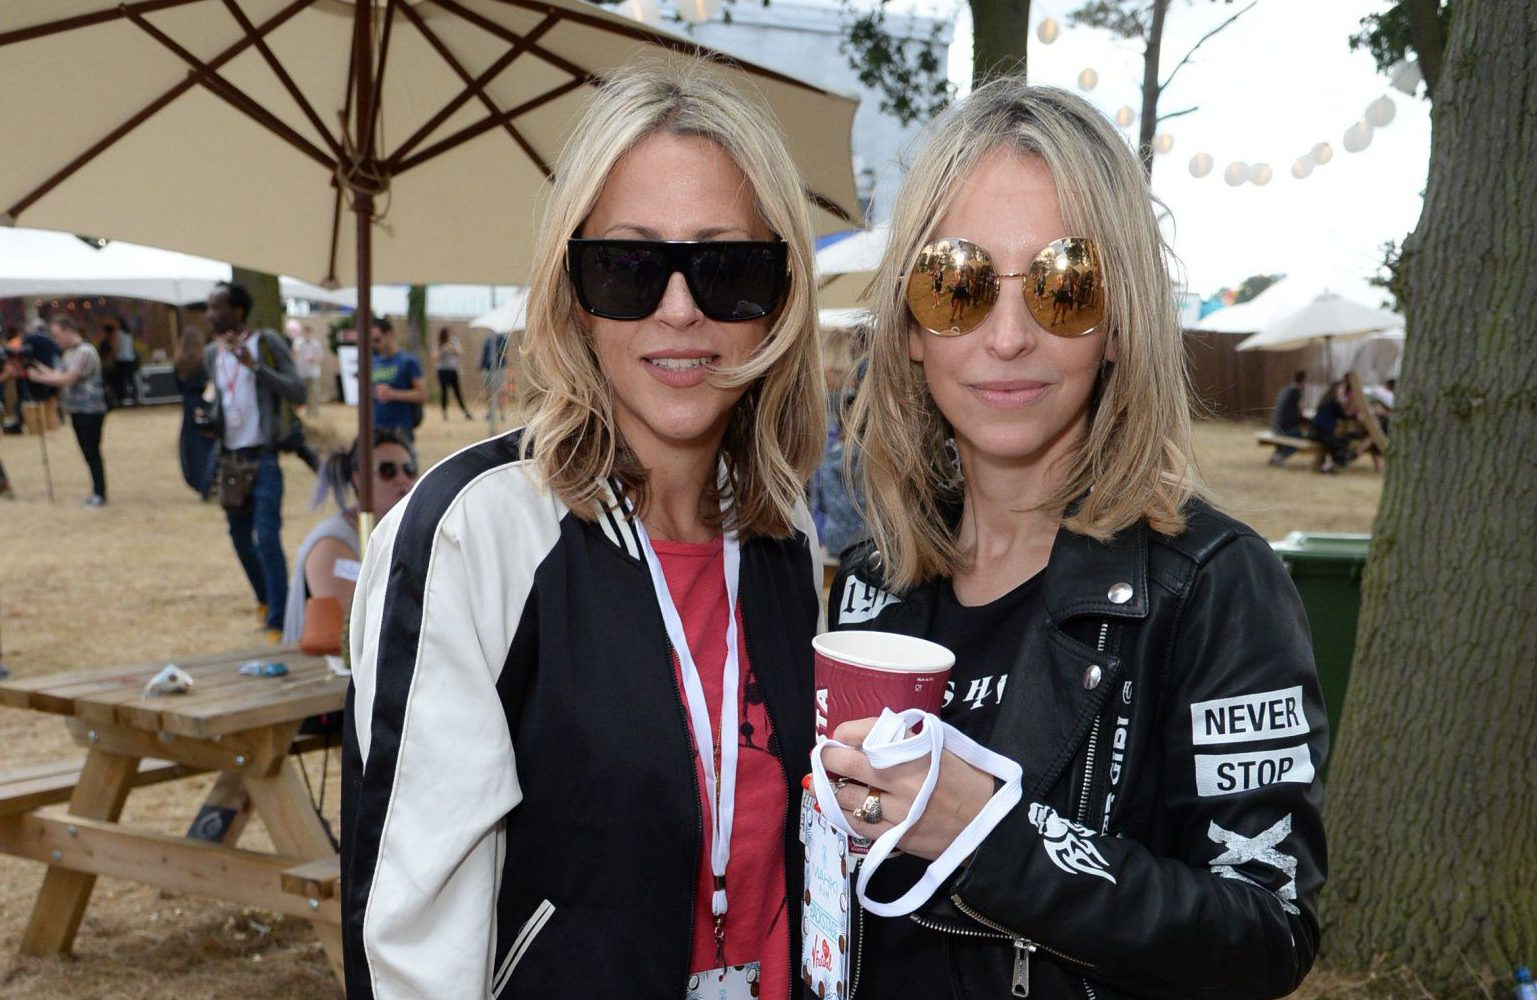 No All Saints' Nicole Appleton did not wish ex Liam Gallagher happy birthday on the wrong date